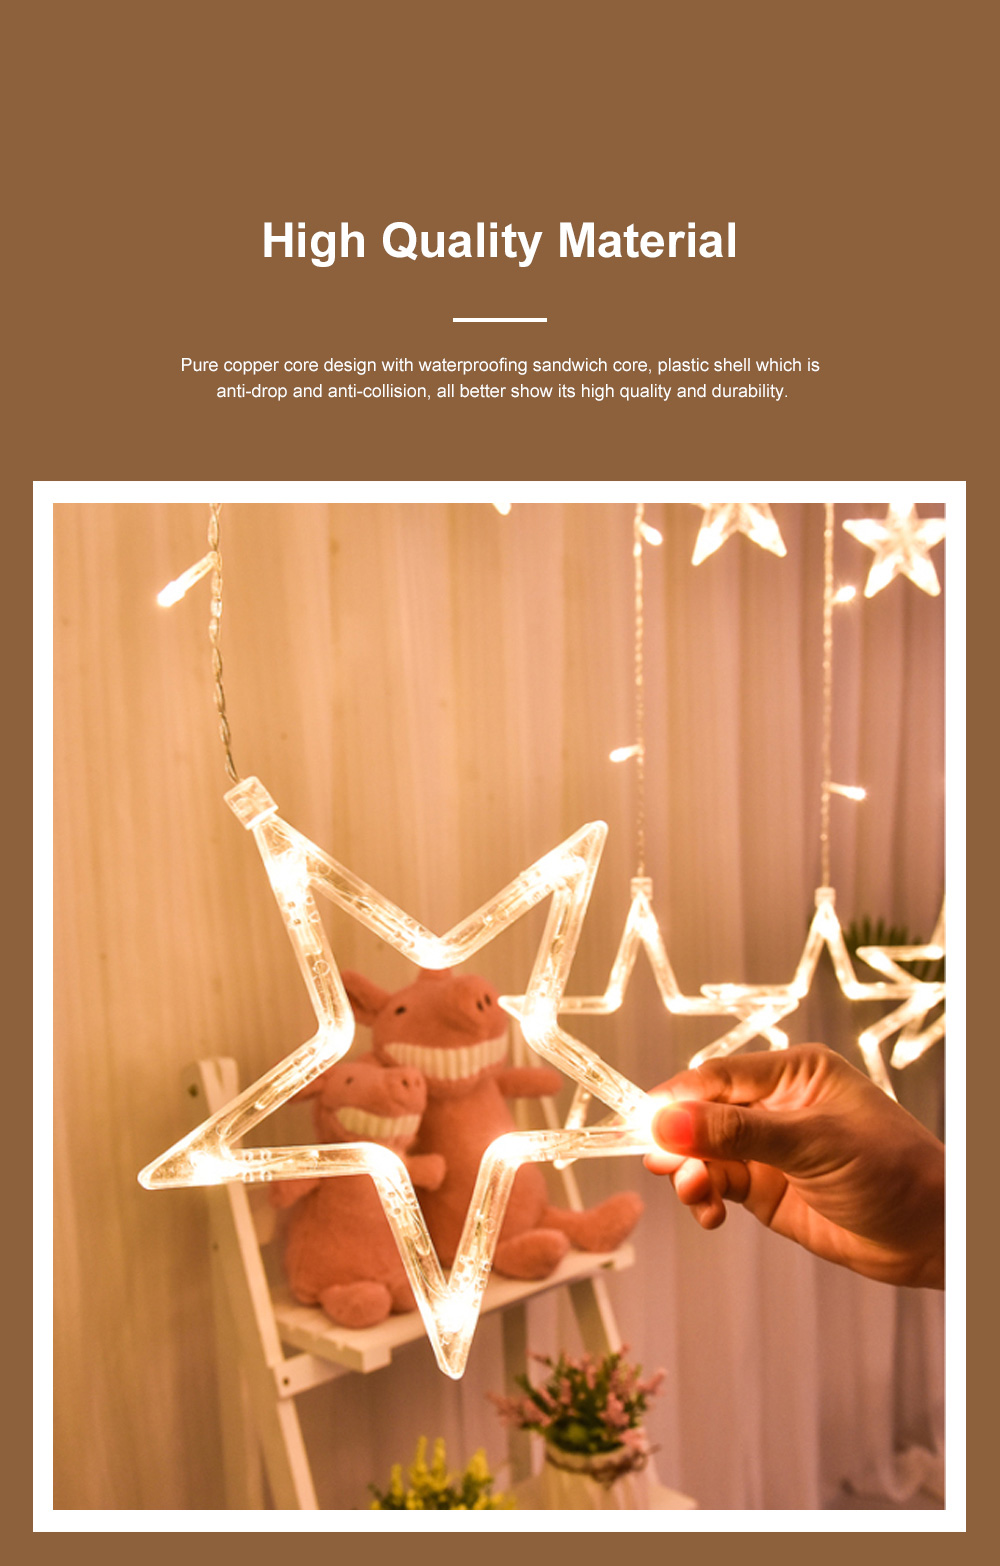 3m Twinkle Star String Lights Waterproof Star Curtain Lights with Color Changing for Wedding Christmas Home Garden Party Festival Decoration 4